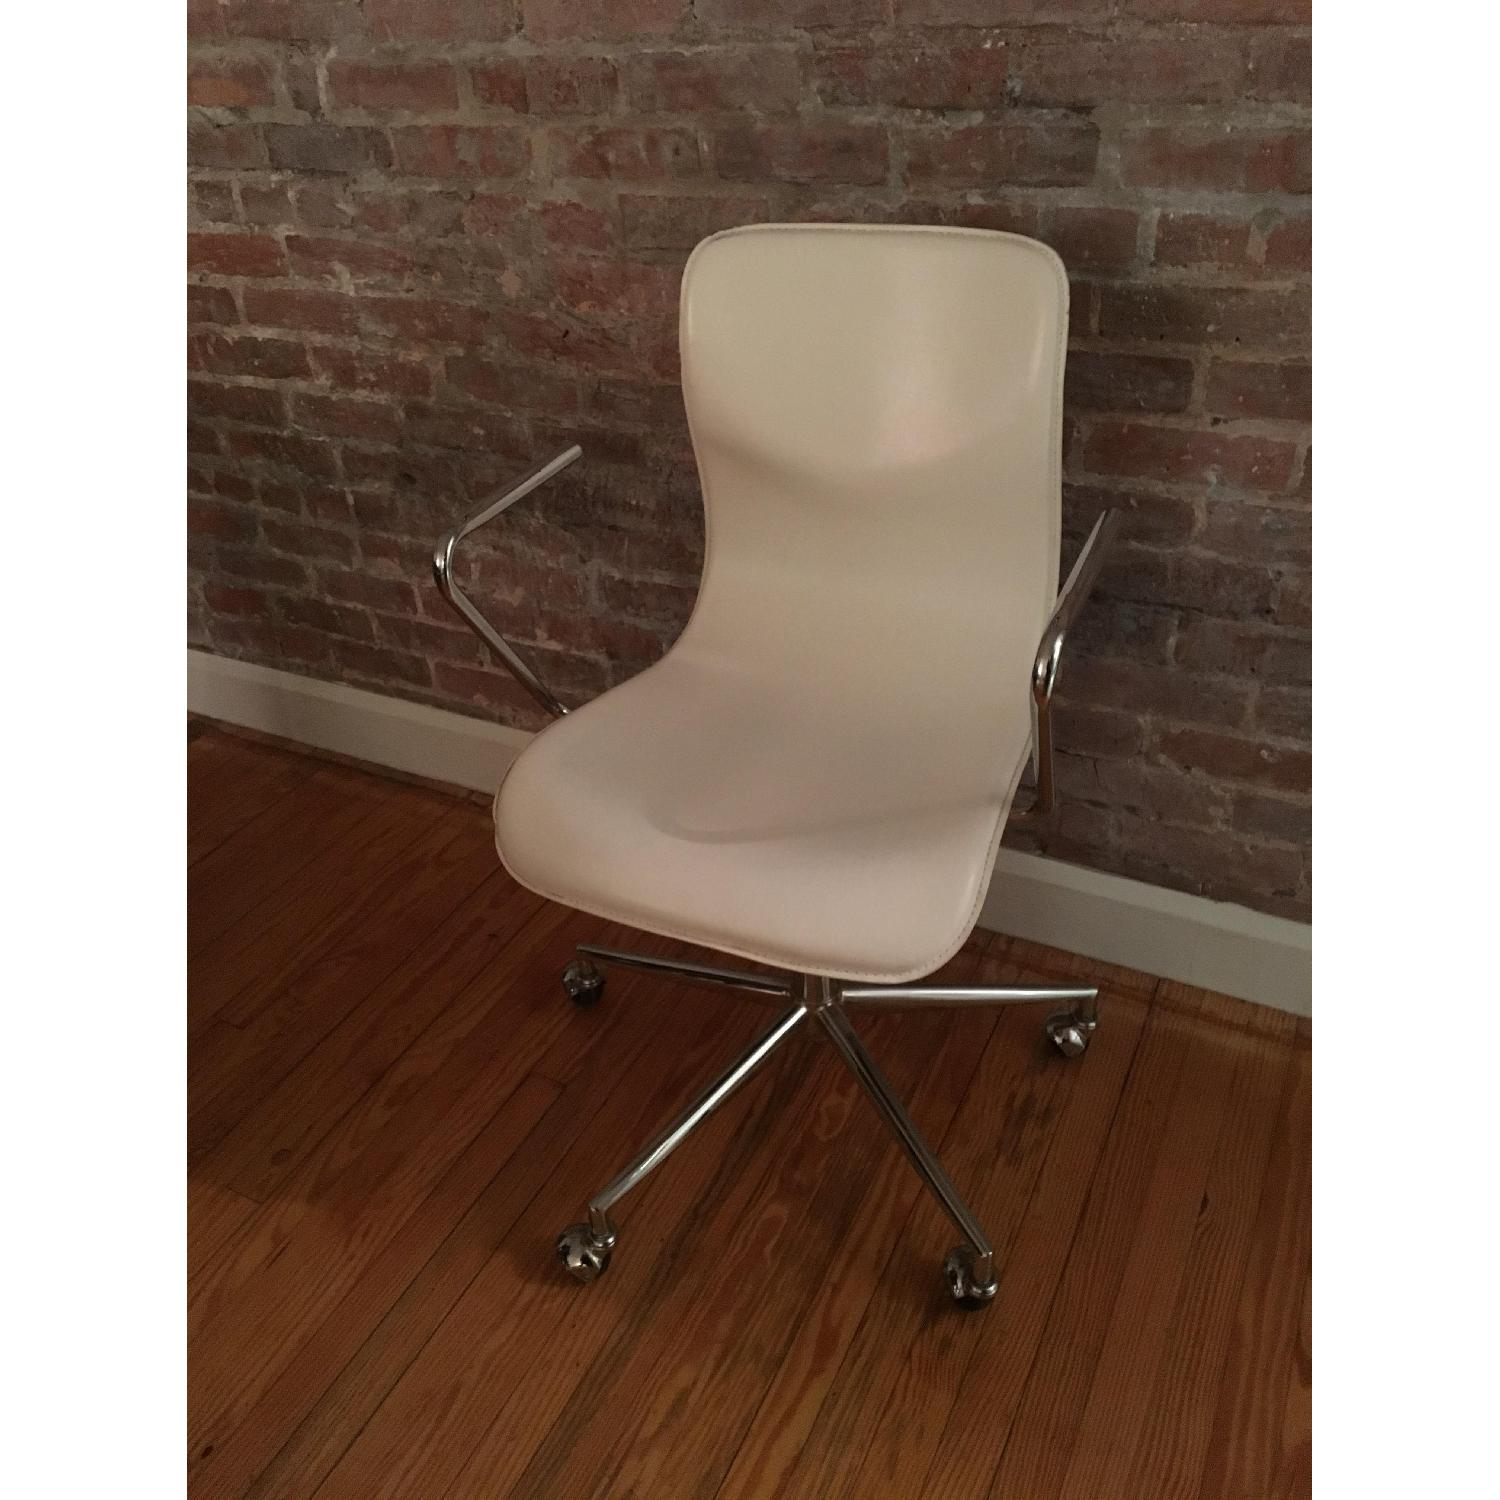 CB2 Form White Office Chair w/ Arm Rest - image-2